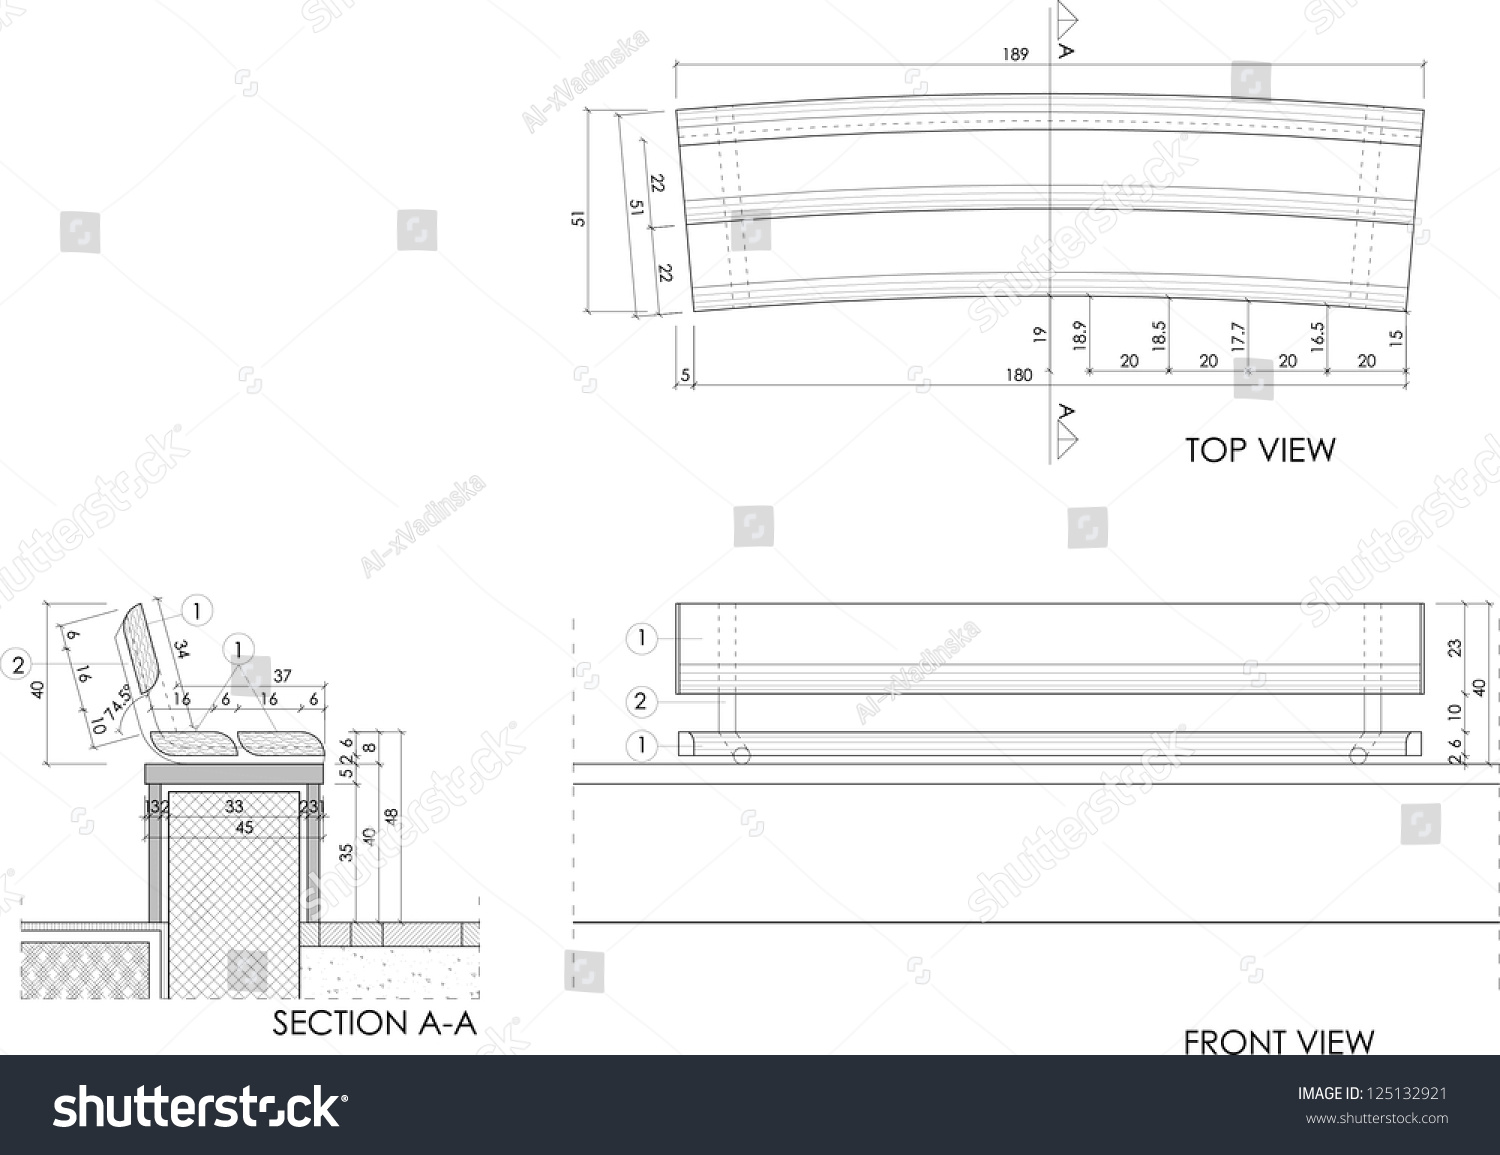 Drawing plans of a park bench